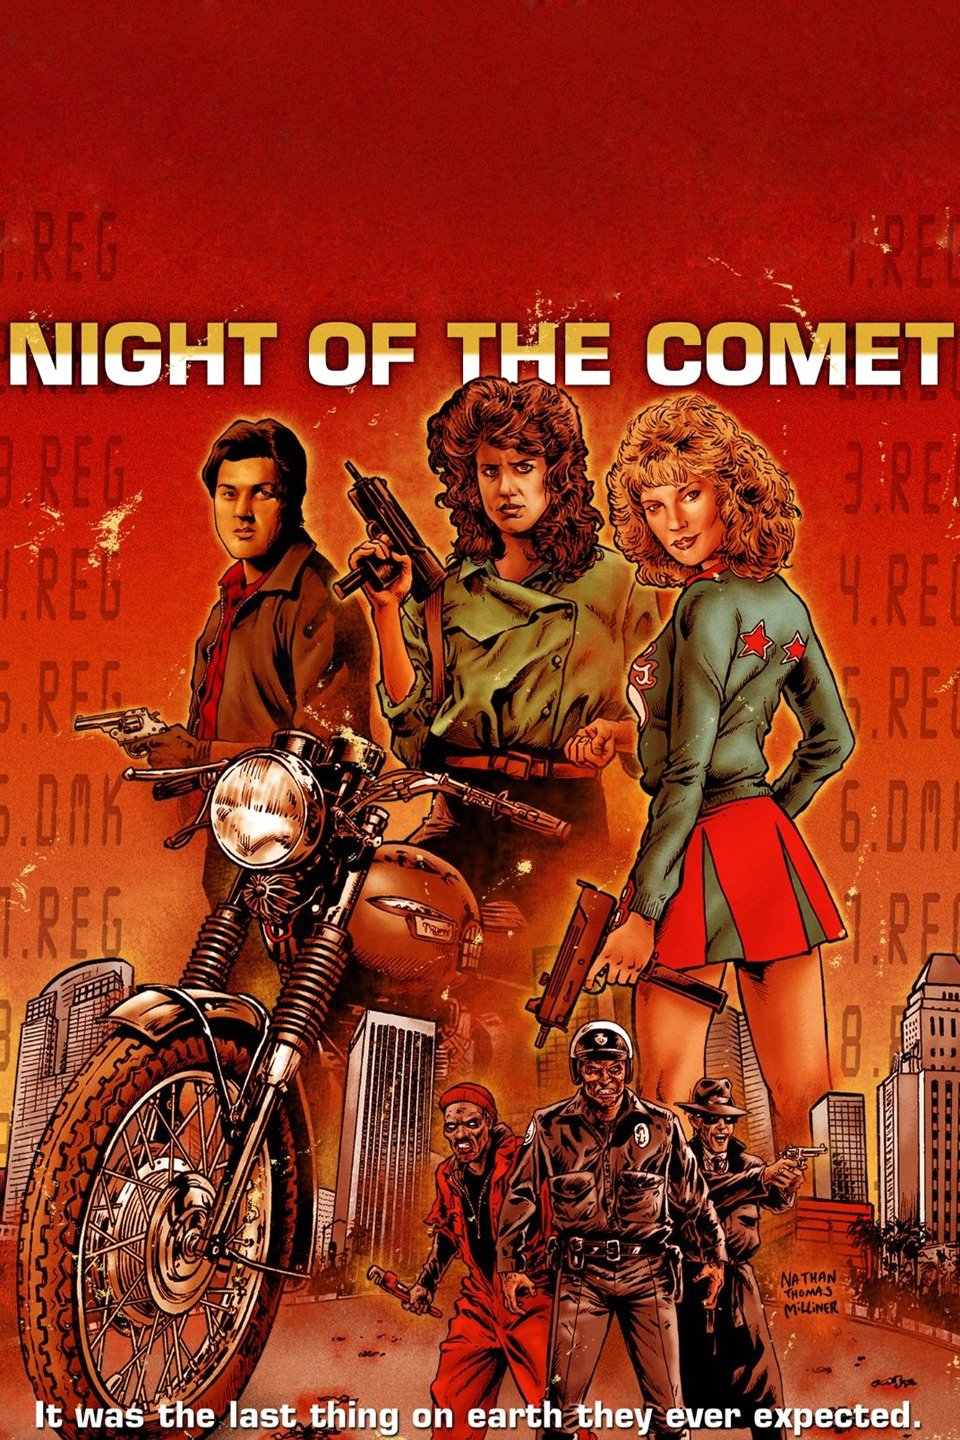 Movie poster for Night of the Comet featuring main characters in illustrative style in reddish hues.